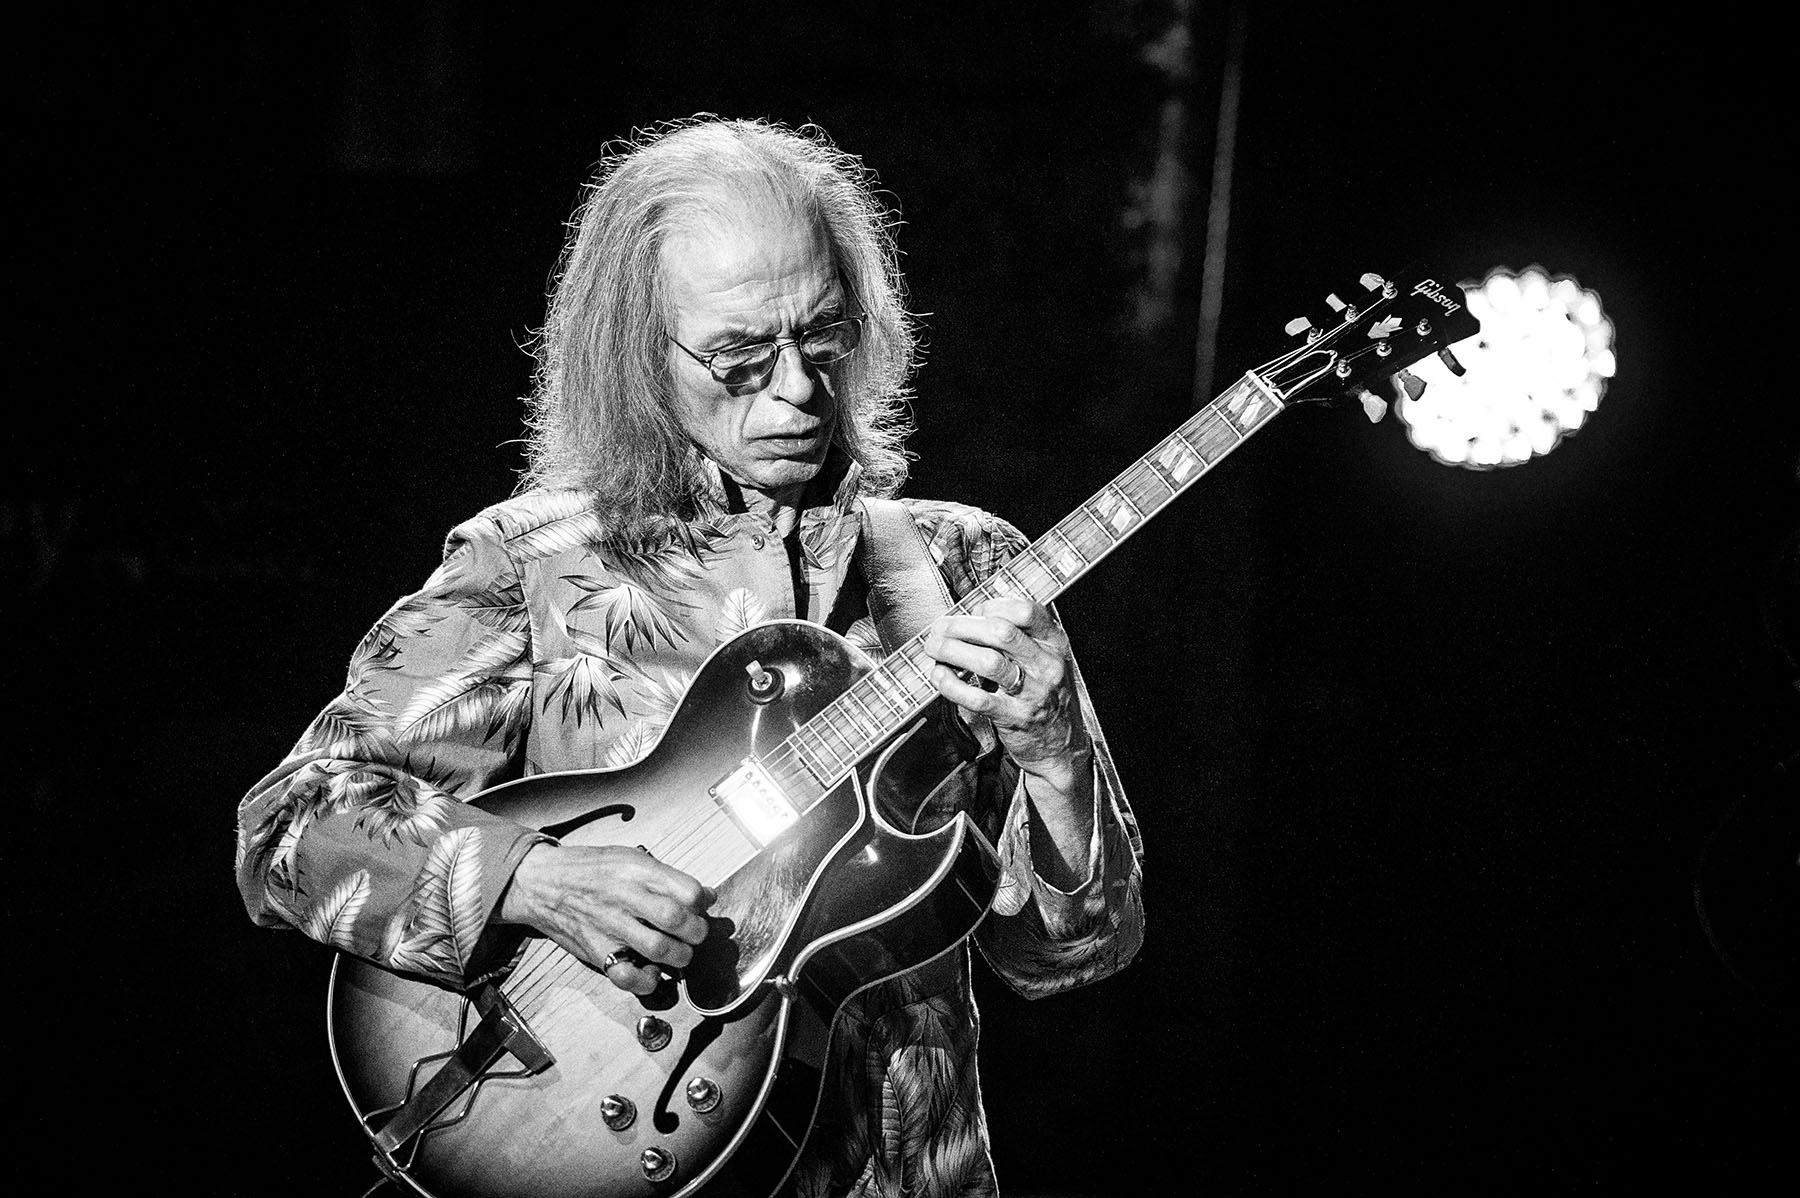 Steve Howe of Yes live at the Mountain Winery